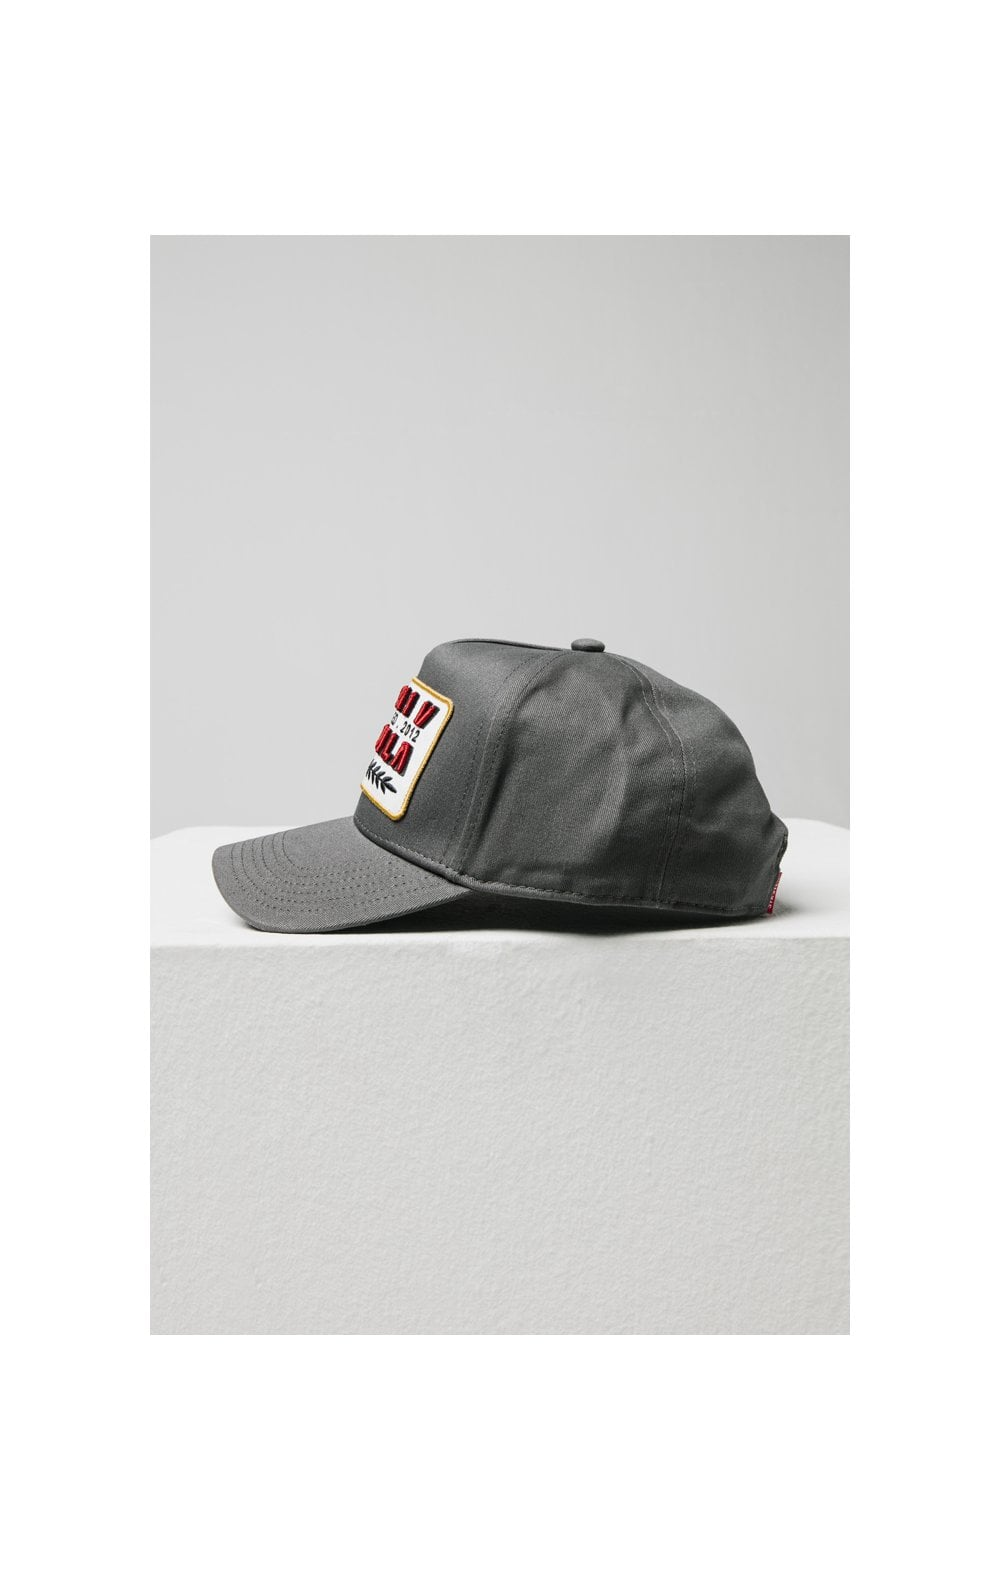 SikSilk Patch Full Trucker - Charcoal (3)